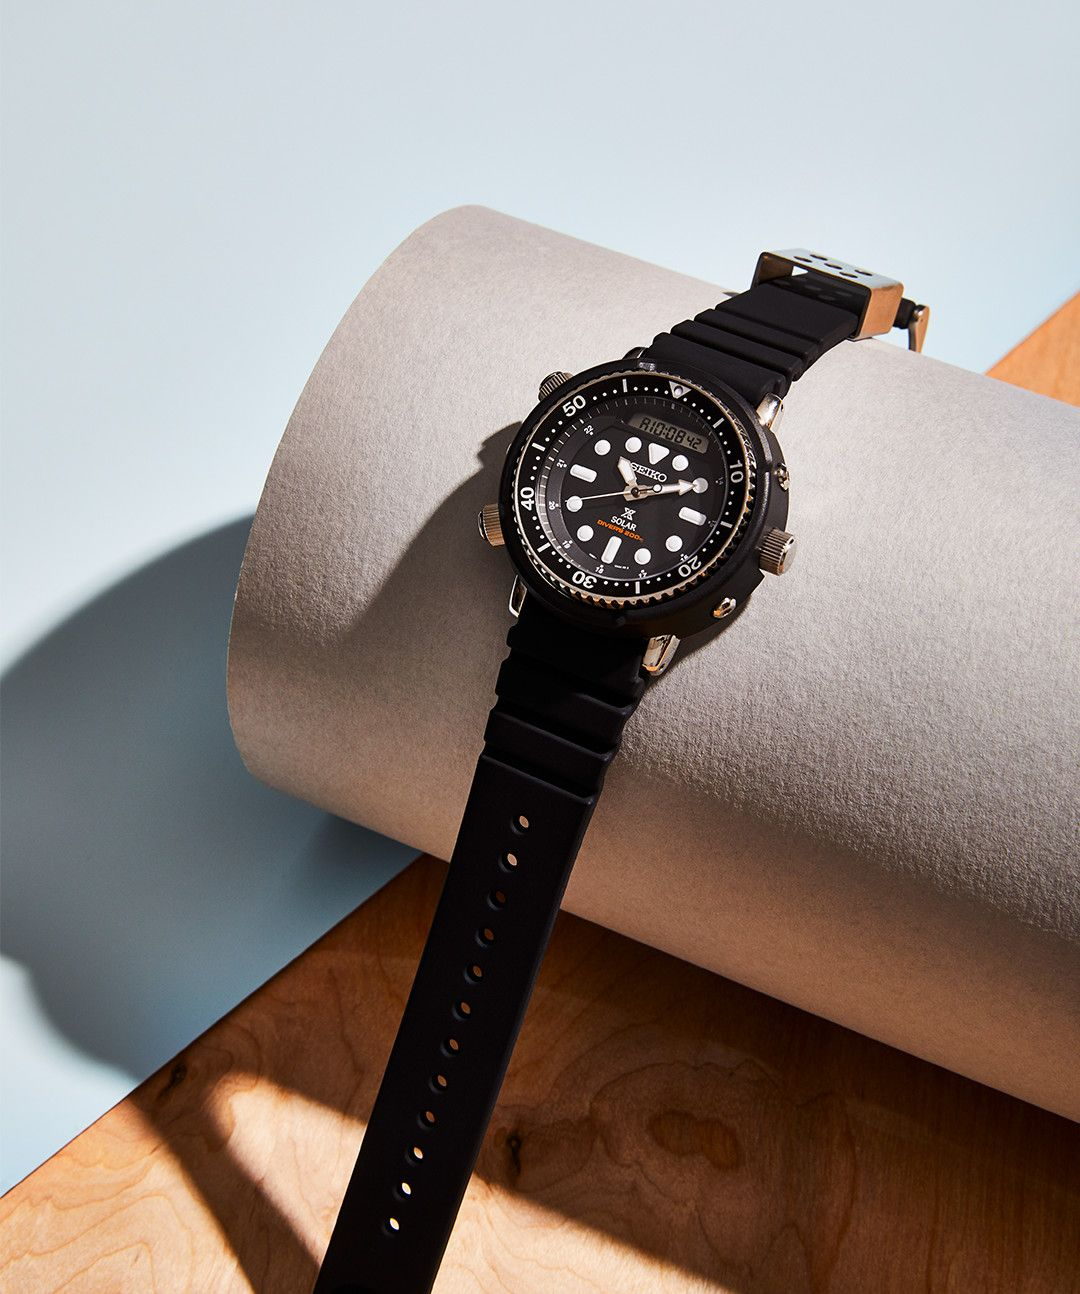 The Smart, Stylish Diver That'll Withstand Anything